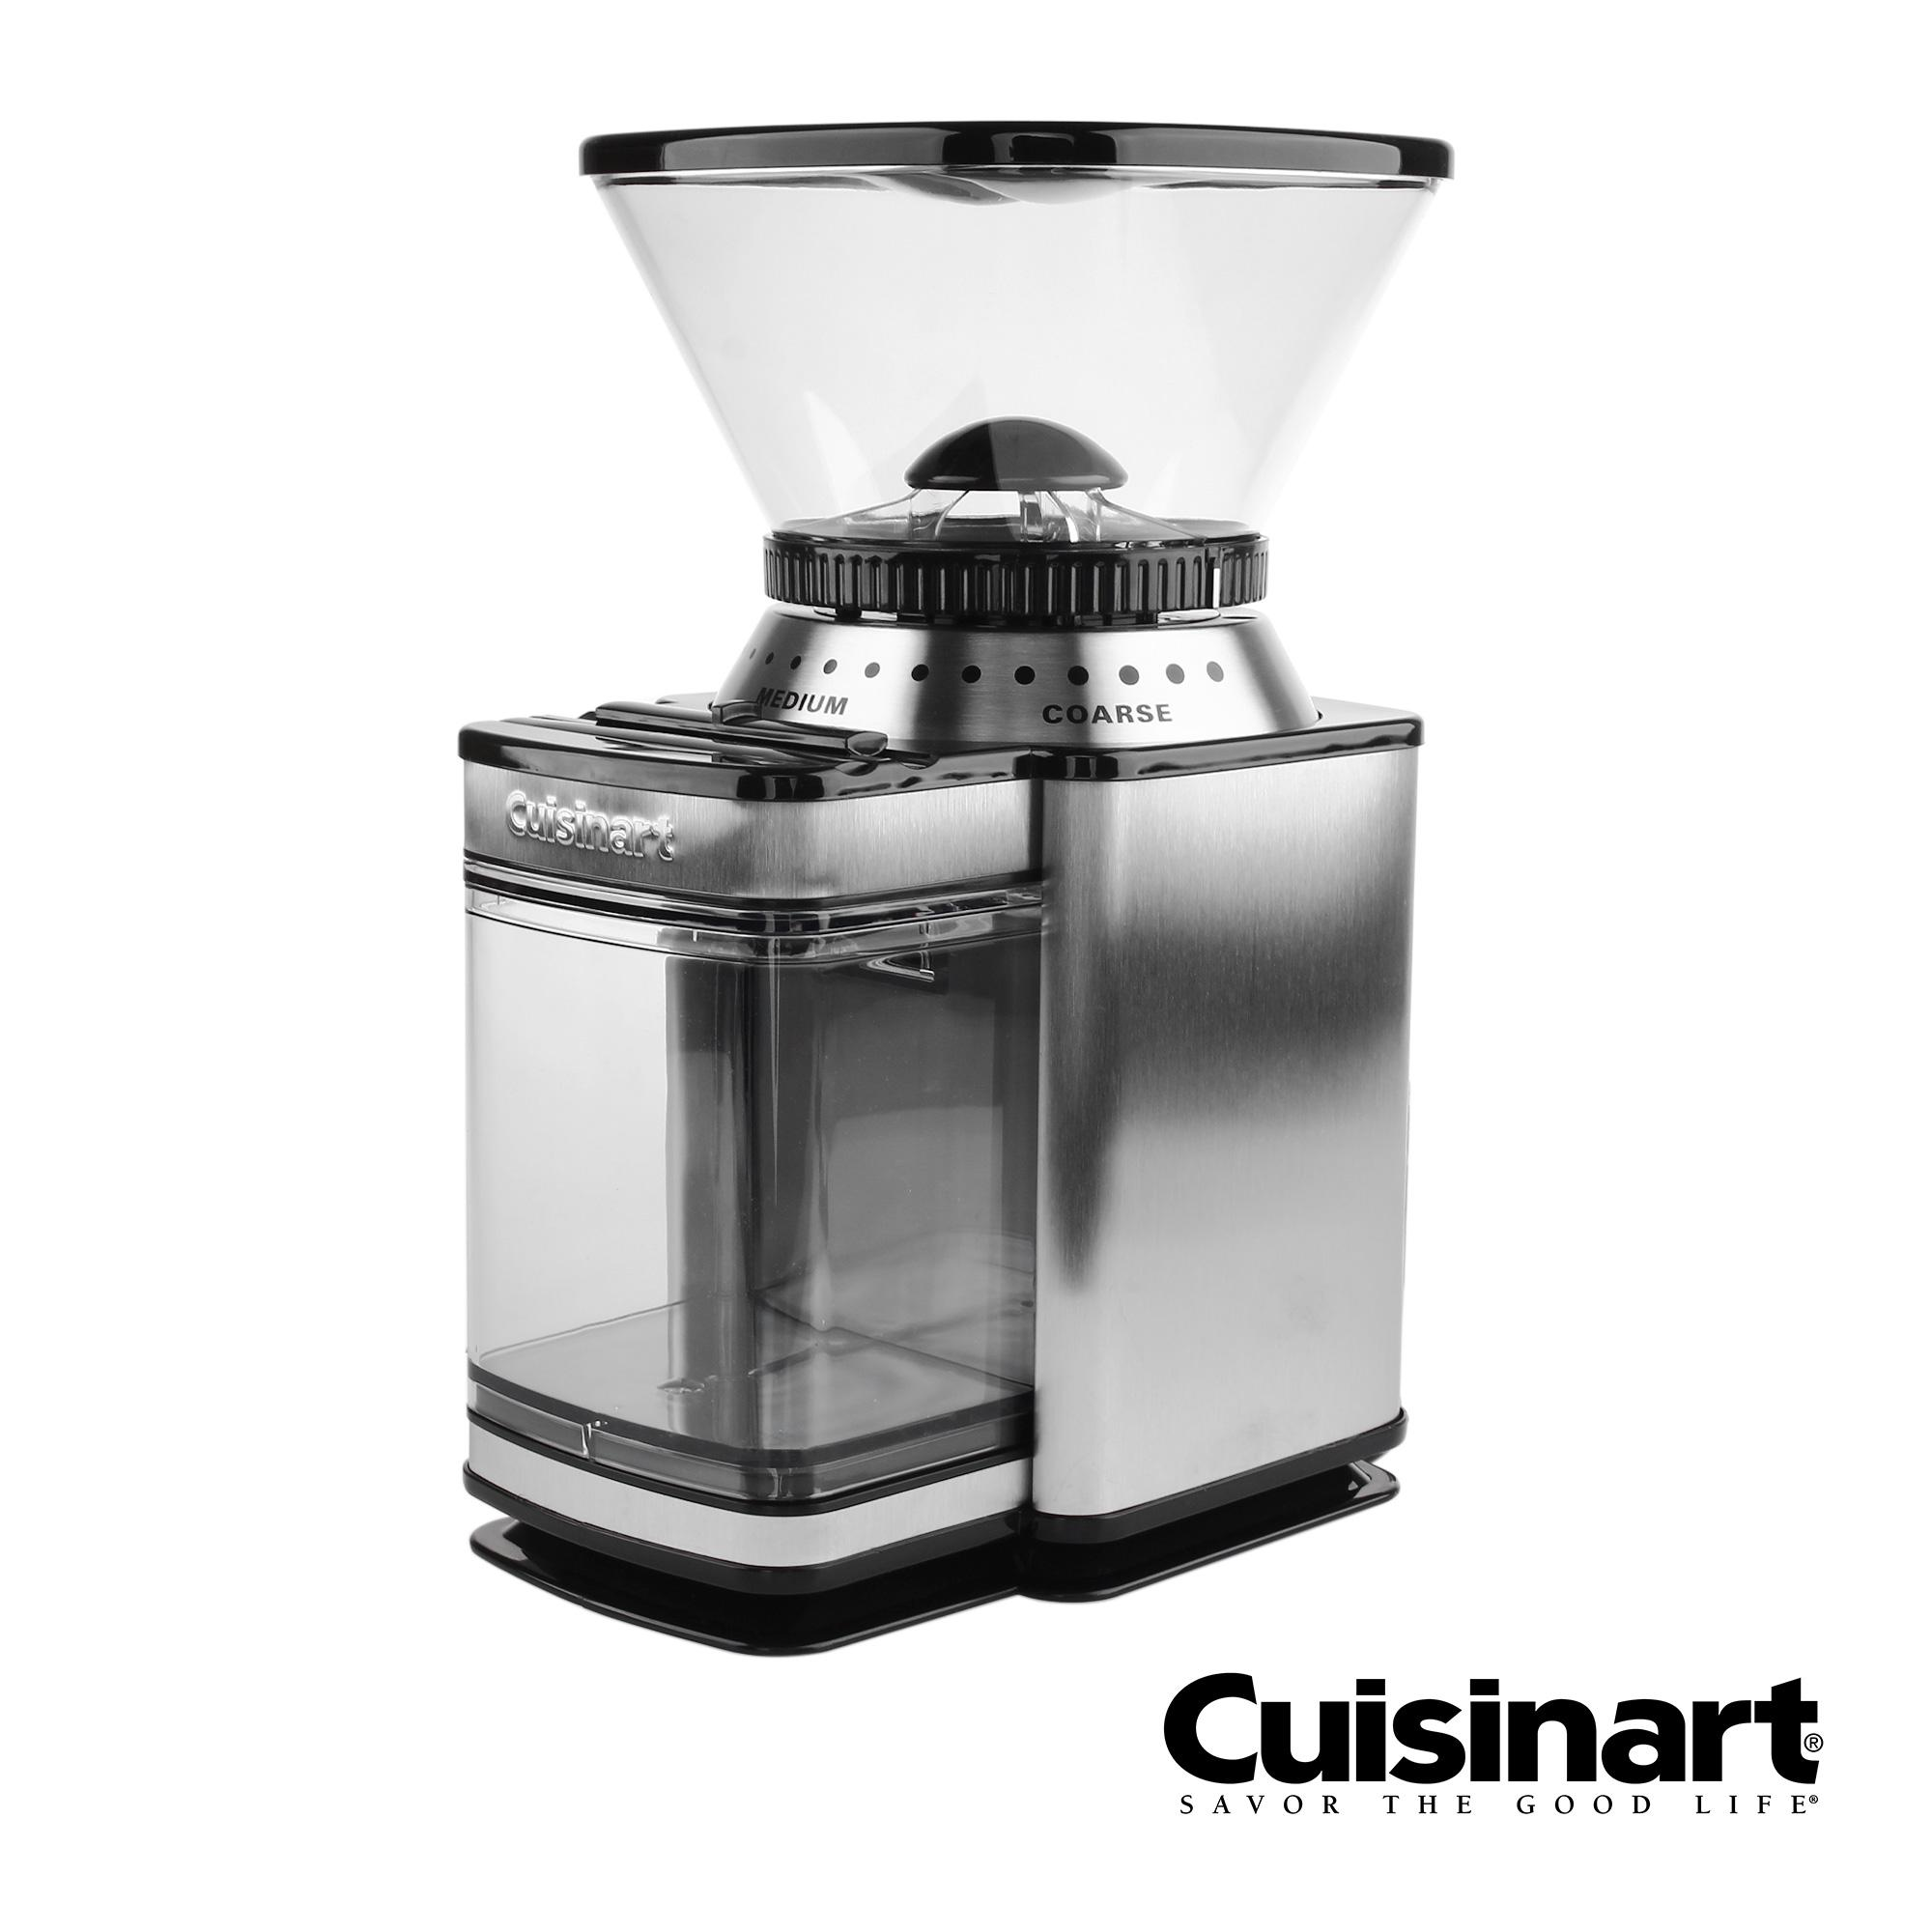 Cuisinart Dbm-8 Supreme Grind Automatic Burr Mill By Cuisinart Philippines.